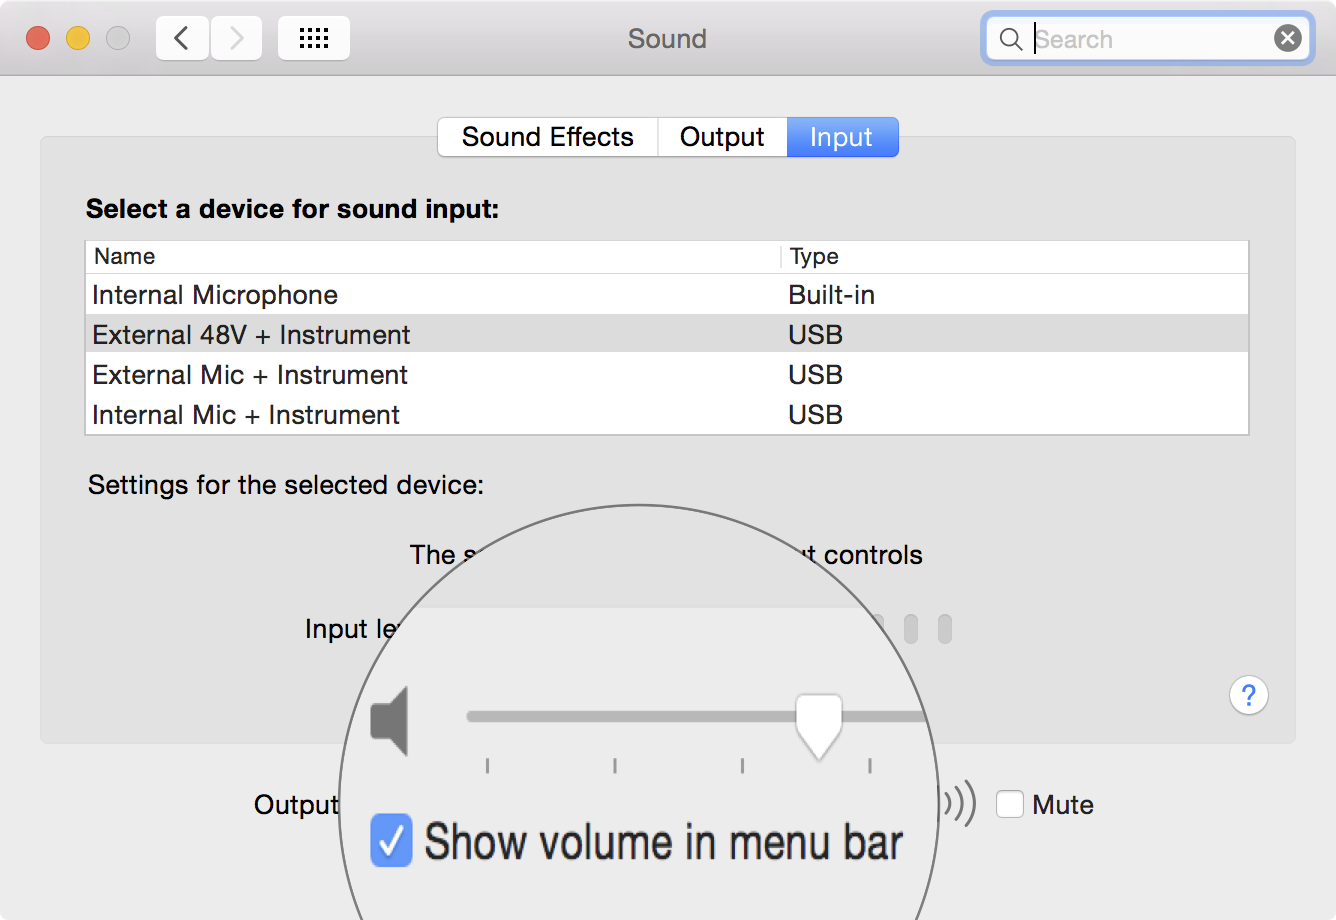 Show volume in menu bar